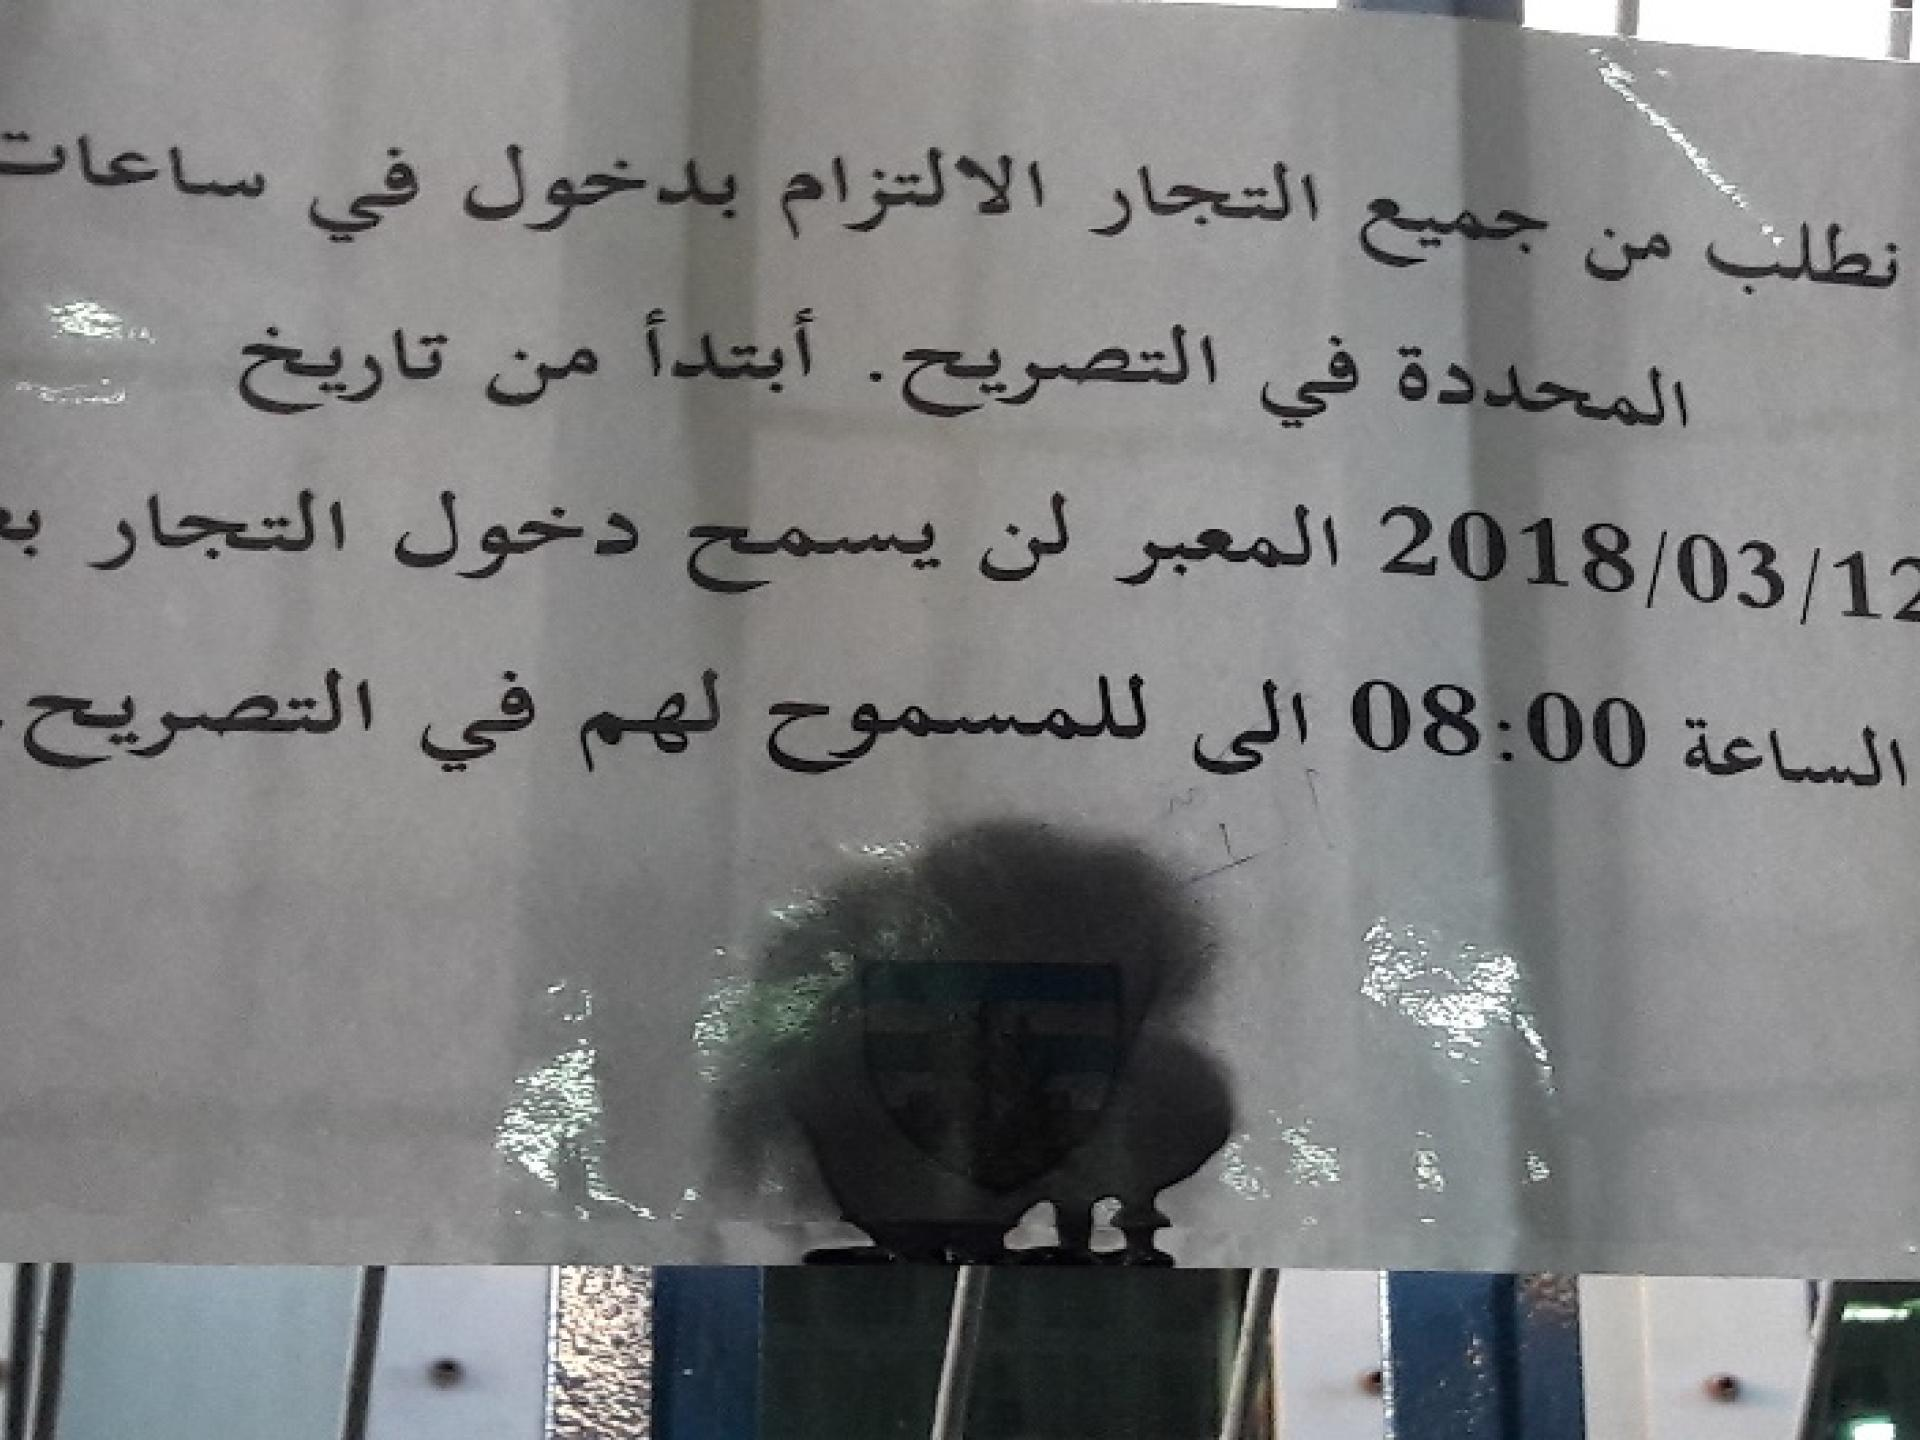 The Civil Administration emblem was sprayed with black paint